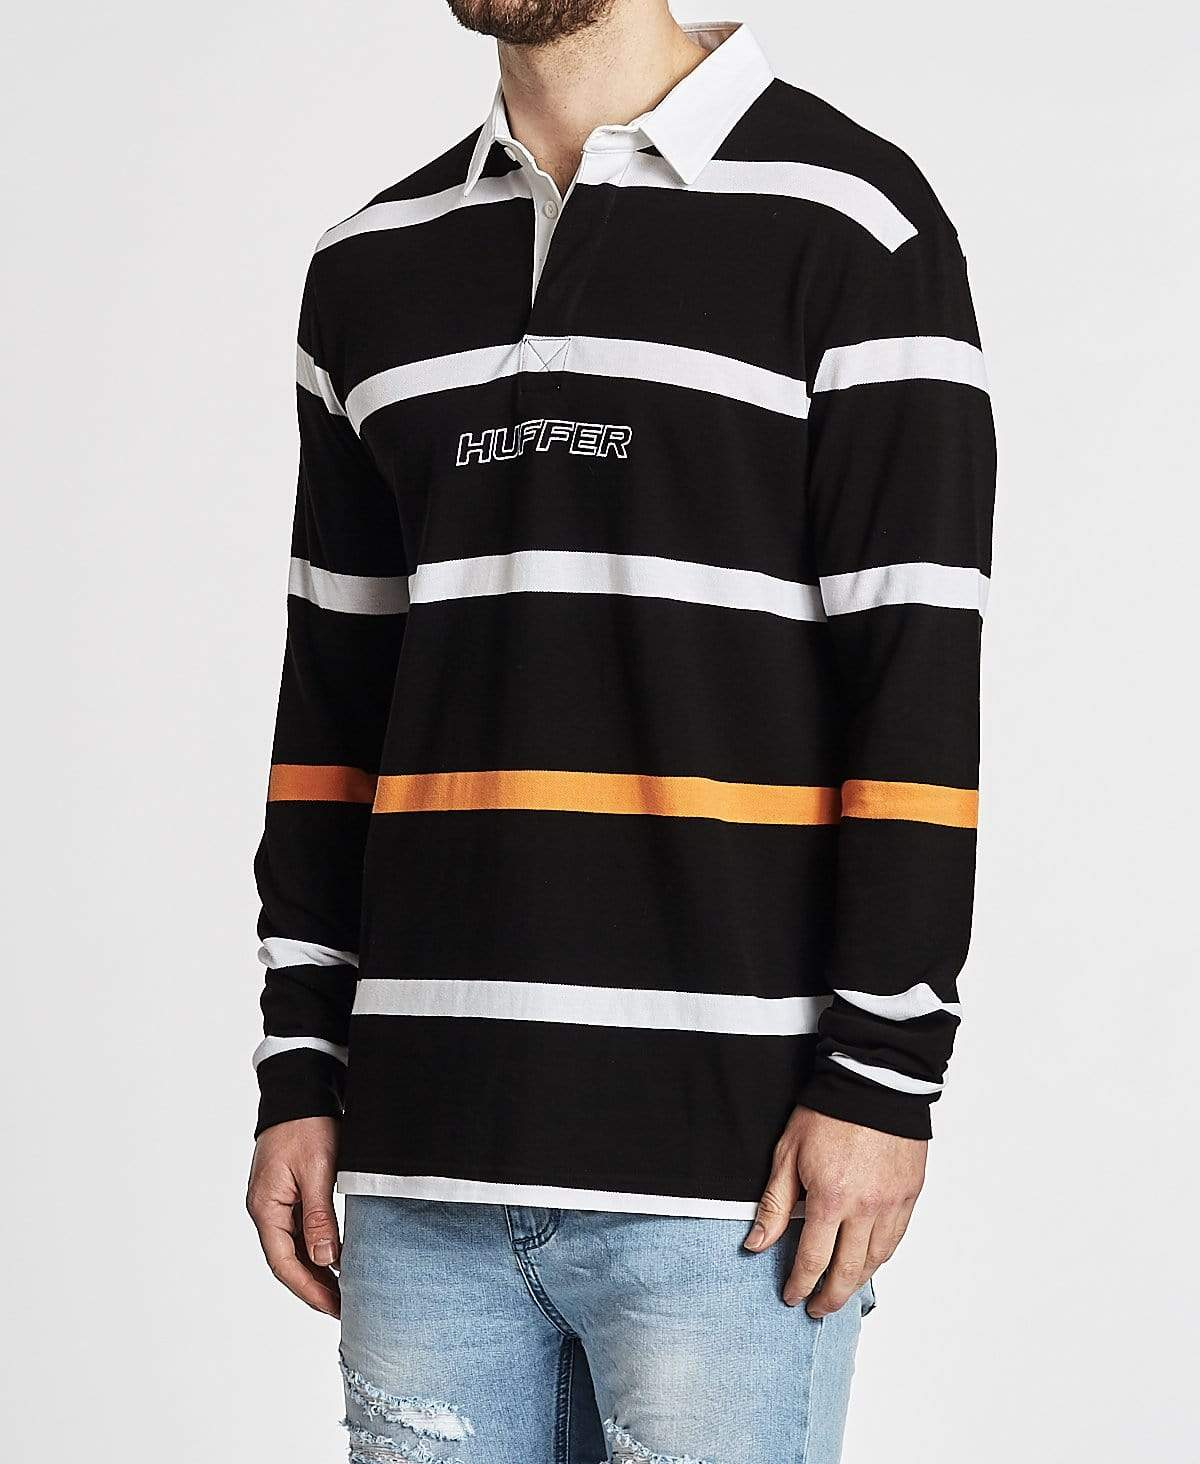 Huffer Pasadena Long Sleeve Rugby Polo Black/Orange